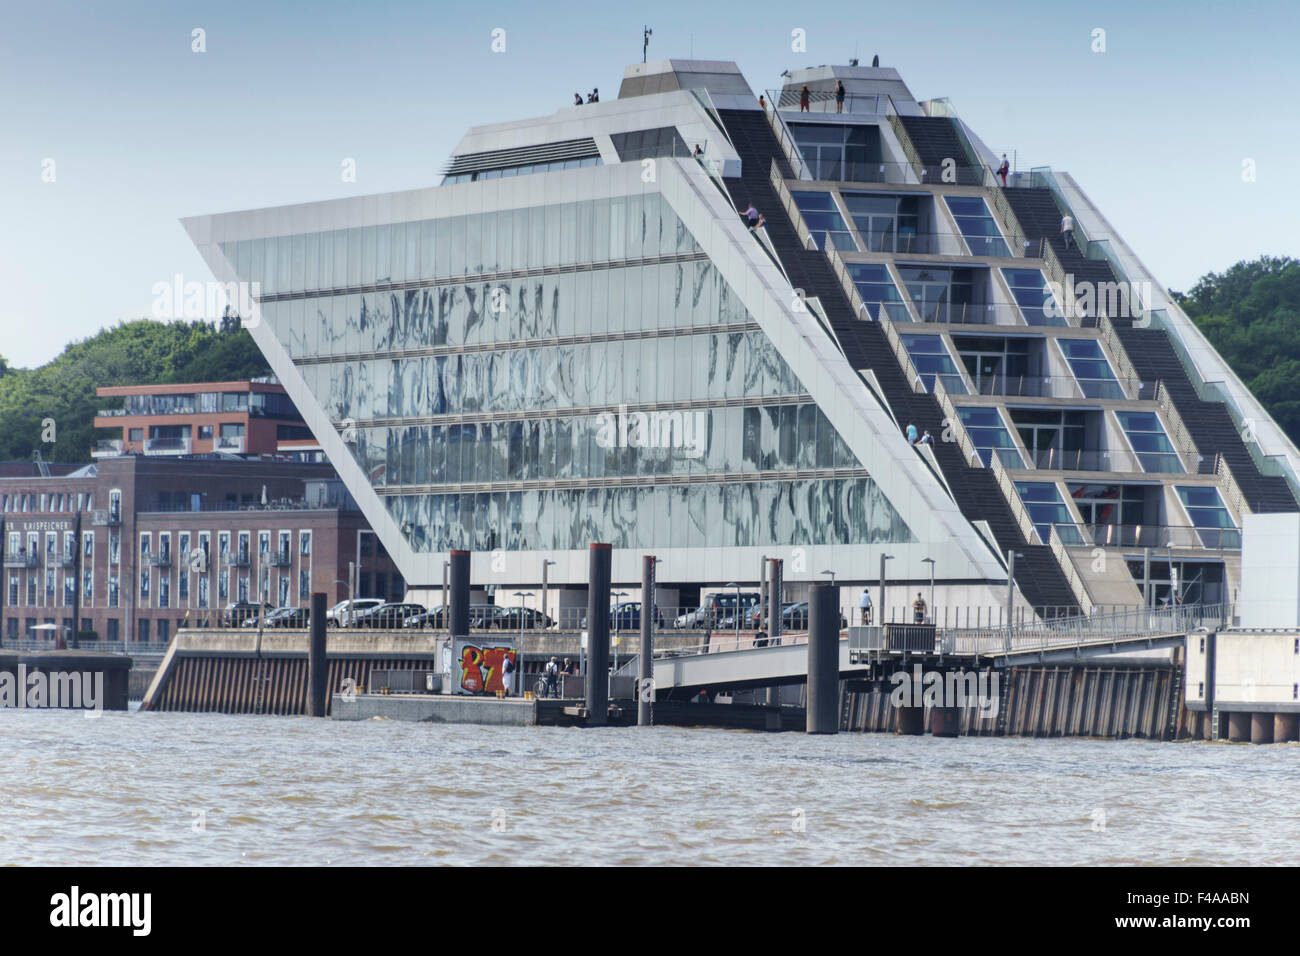 Stock photo hamburg germany riverside new - Hamburg Germany Riverside Architecture